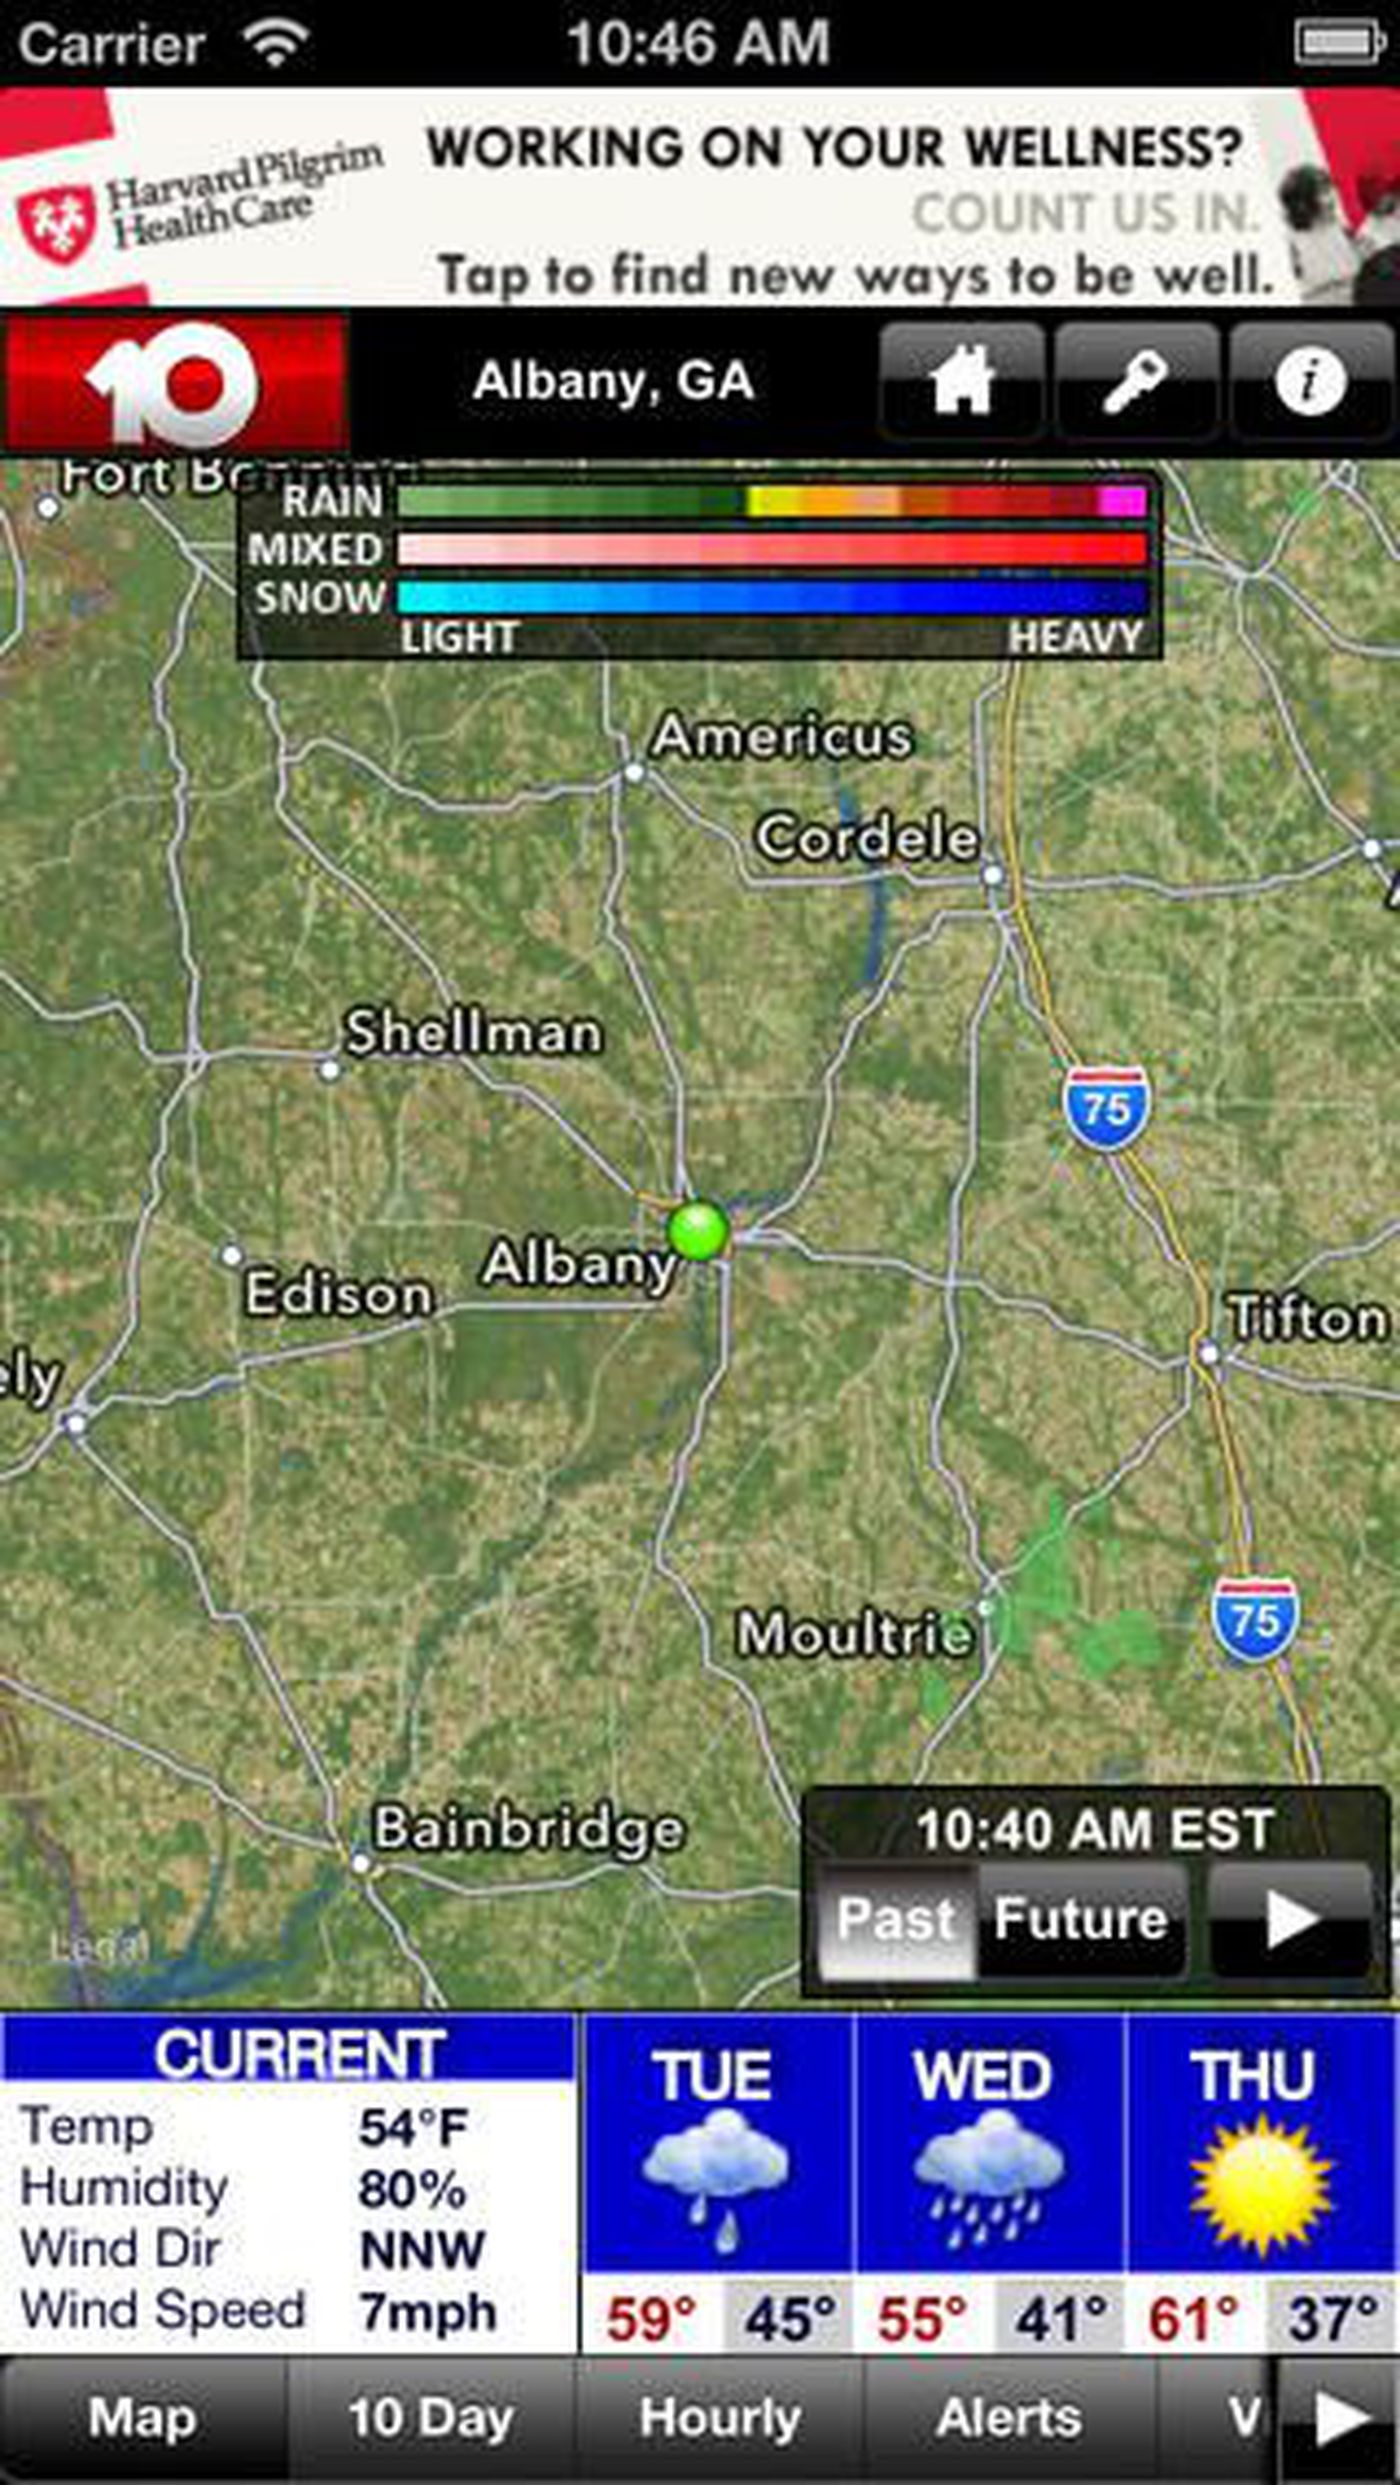 Download WALB's free Weather app for iPhone, Android